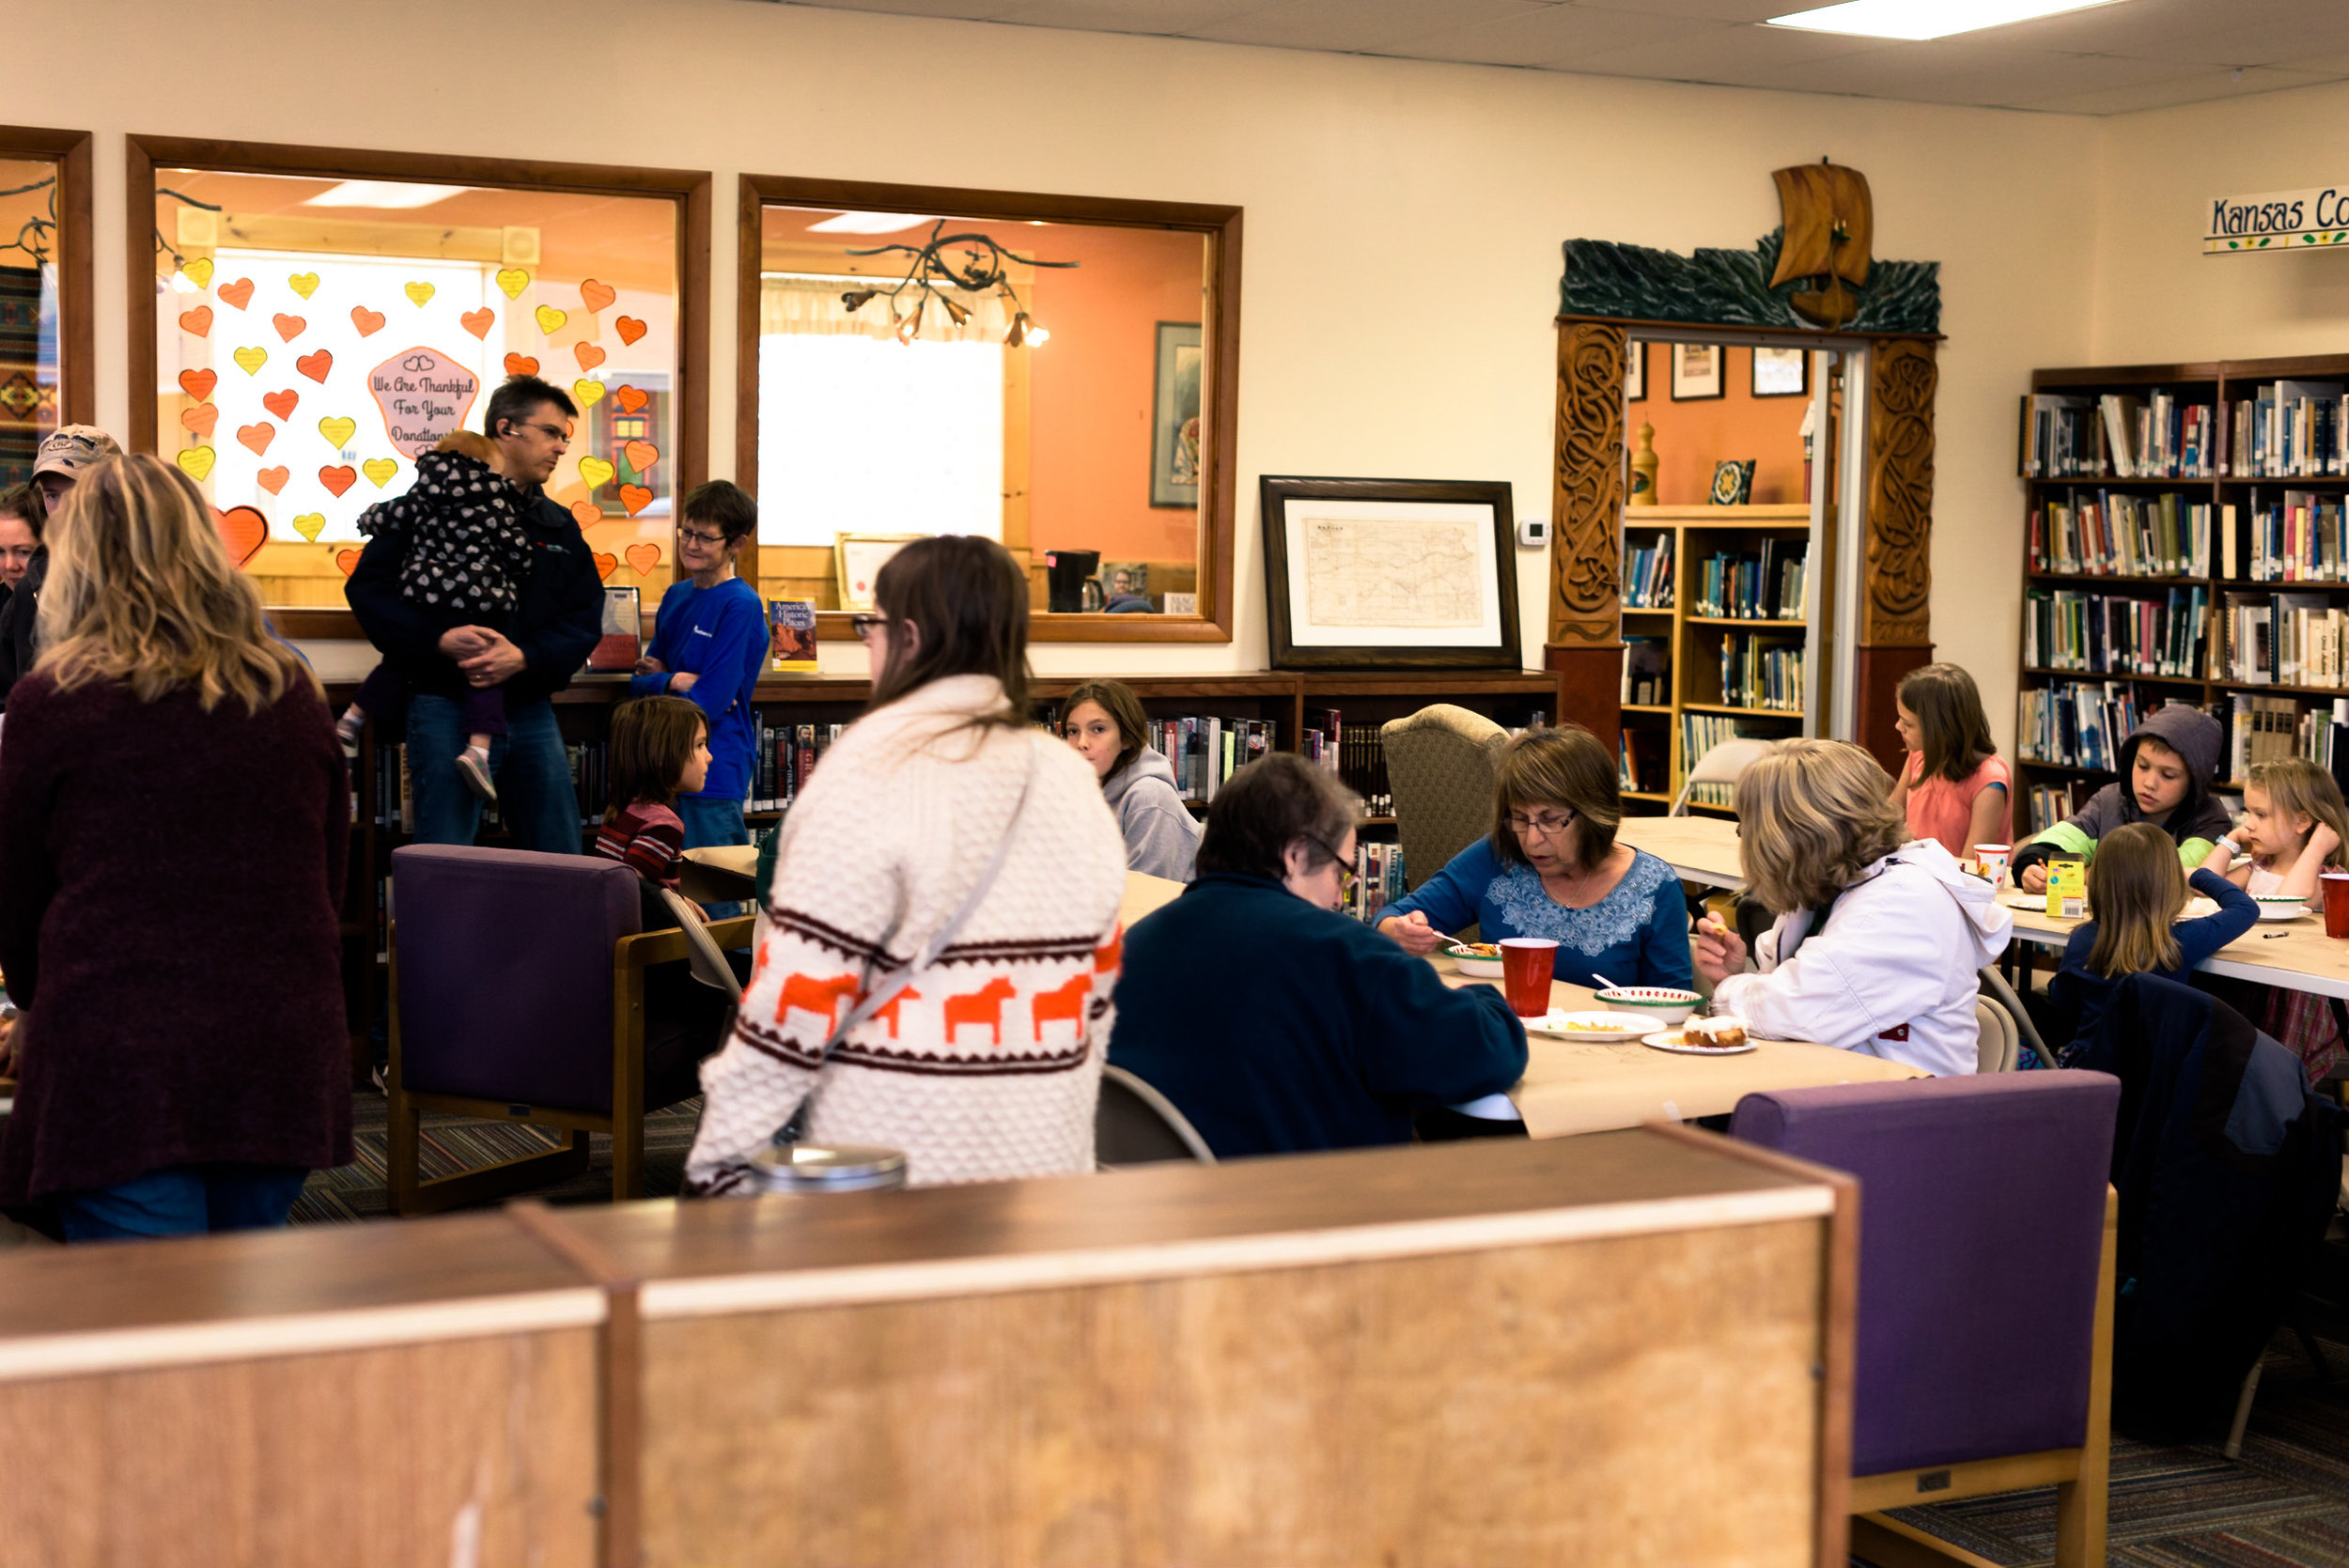 About 60 people gathered at the library to enjoy fellowship and conversation.